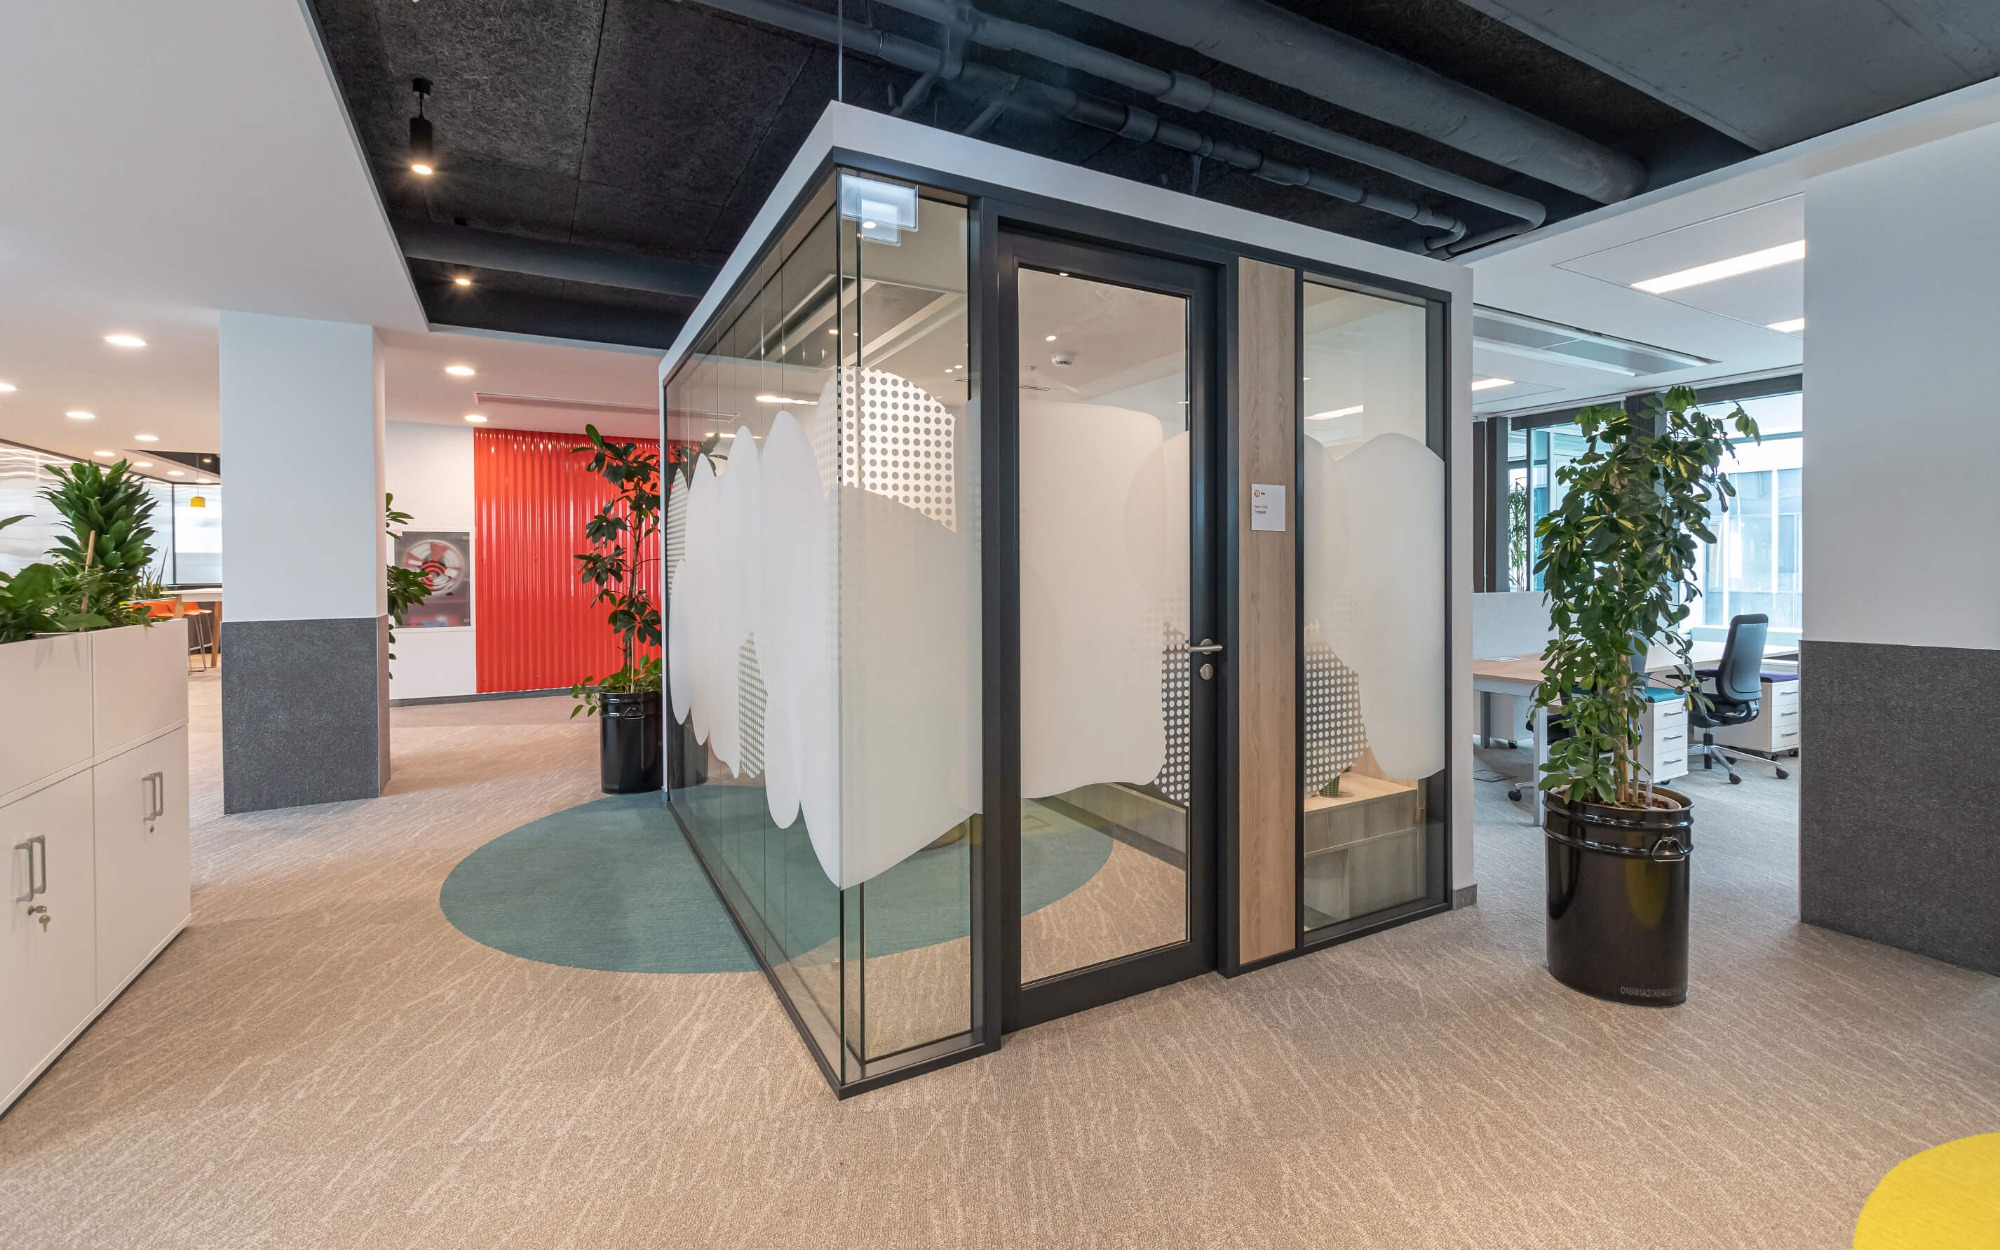 Offices with the feeling of a cozy home